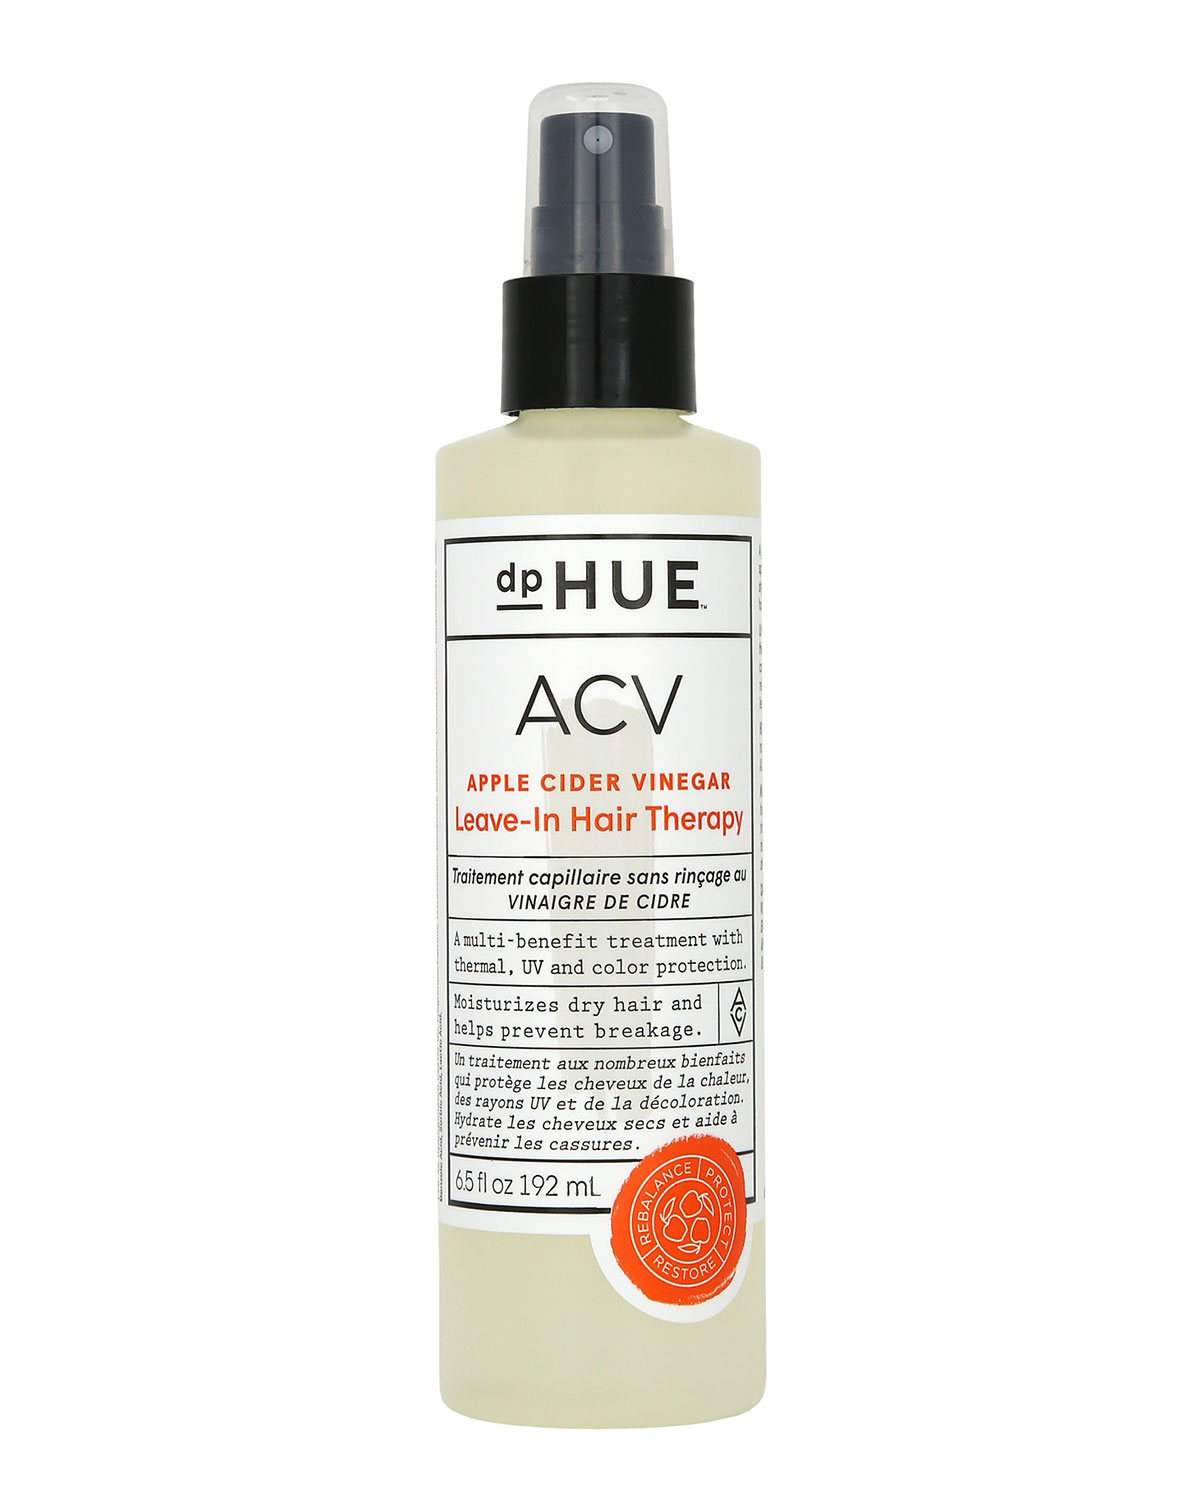 6.5 oz. ACV Leave-In Hair Therapy